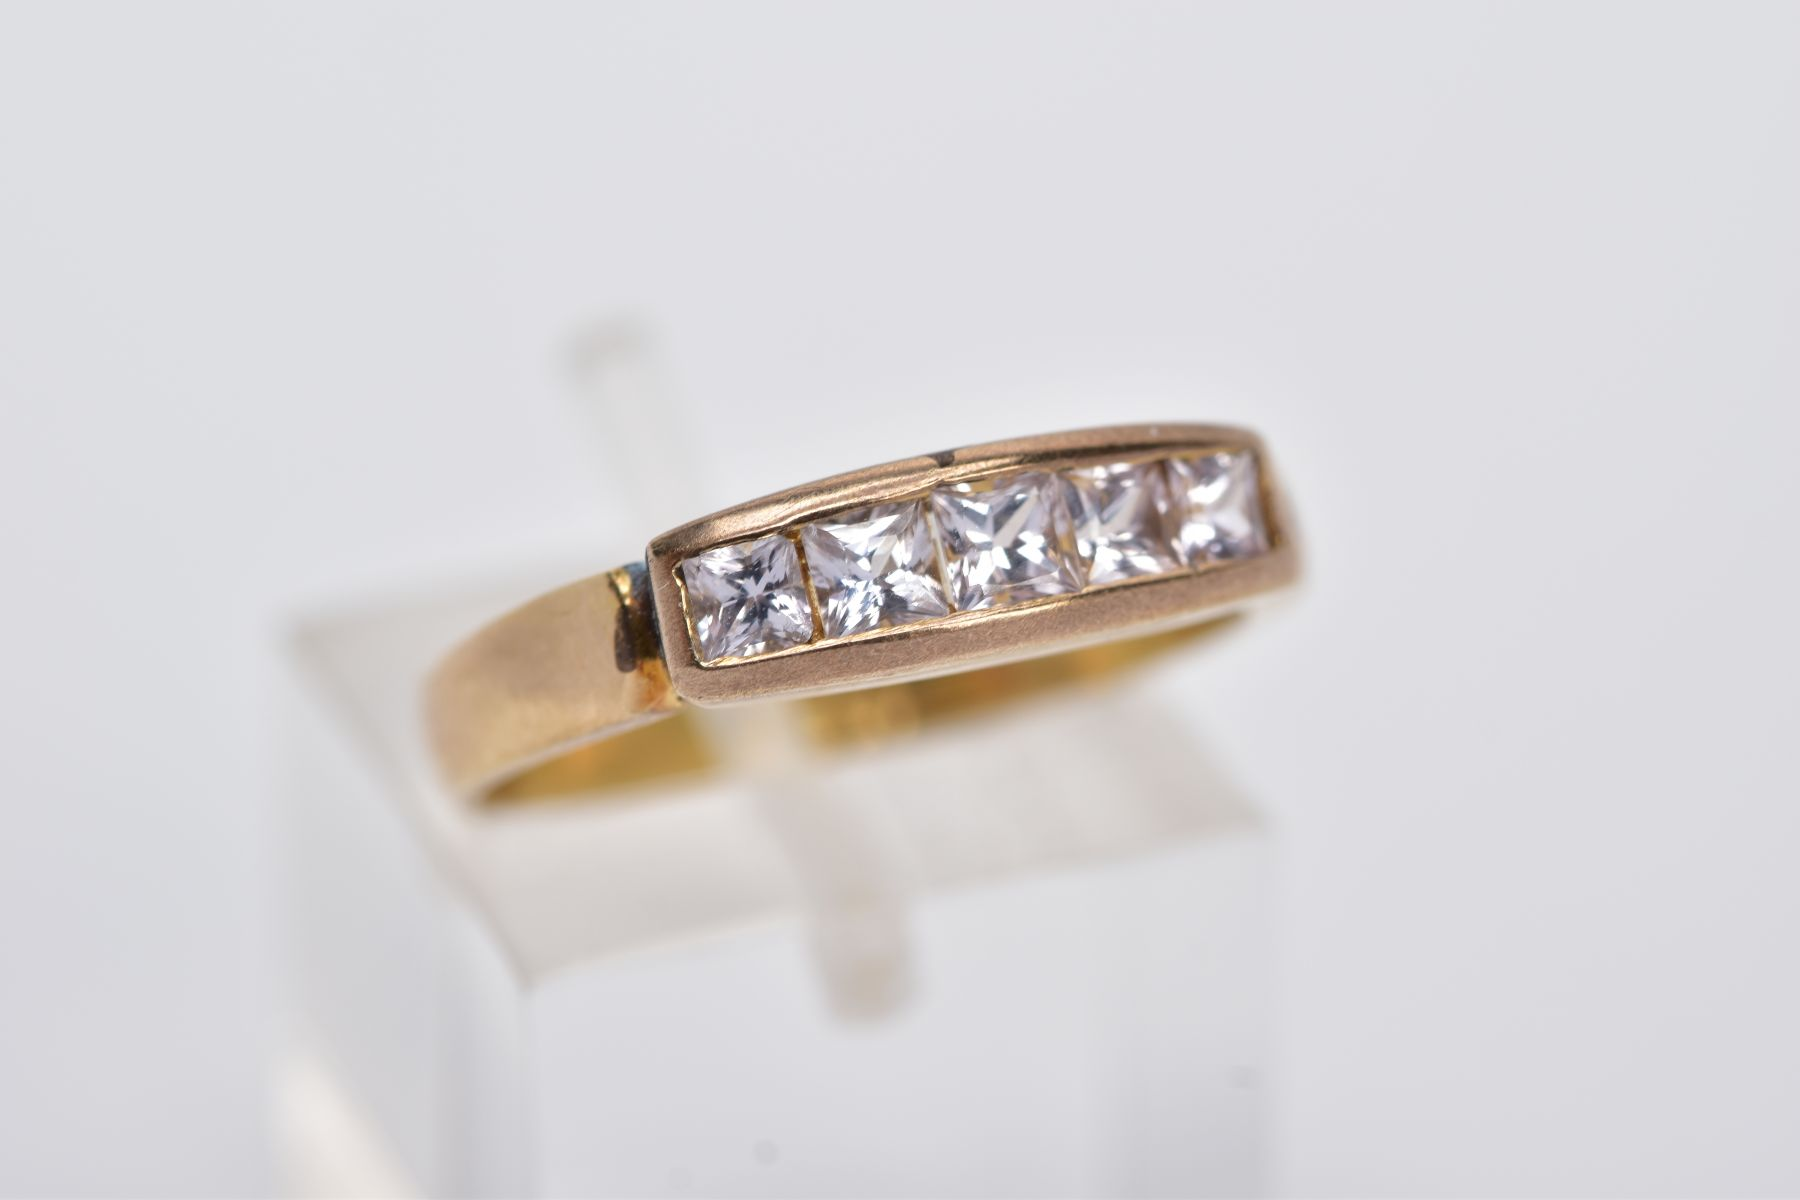 A YELLOW METAL HALF HOOP RING, designed with a row of graduated square cut colourless stones, - Image 4 of 4